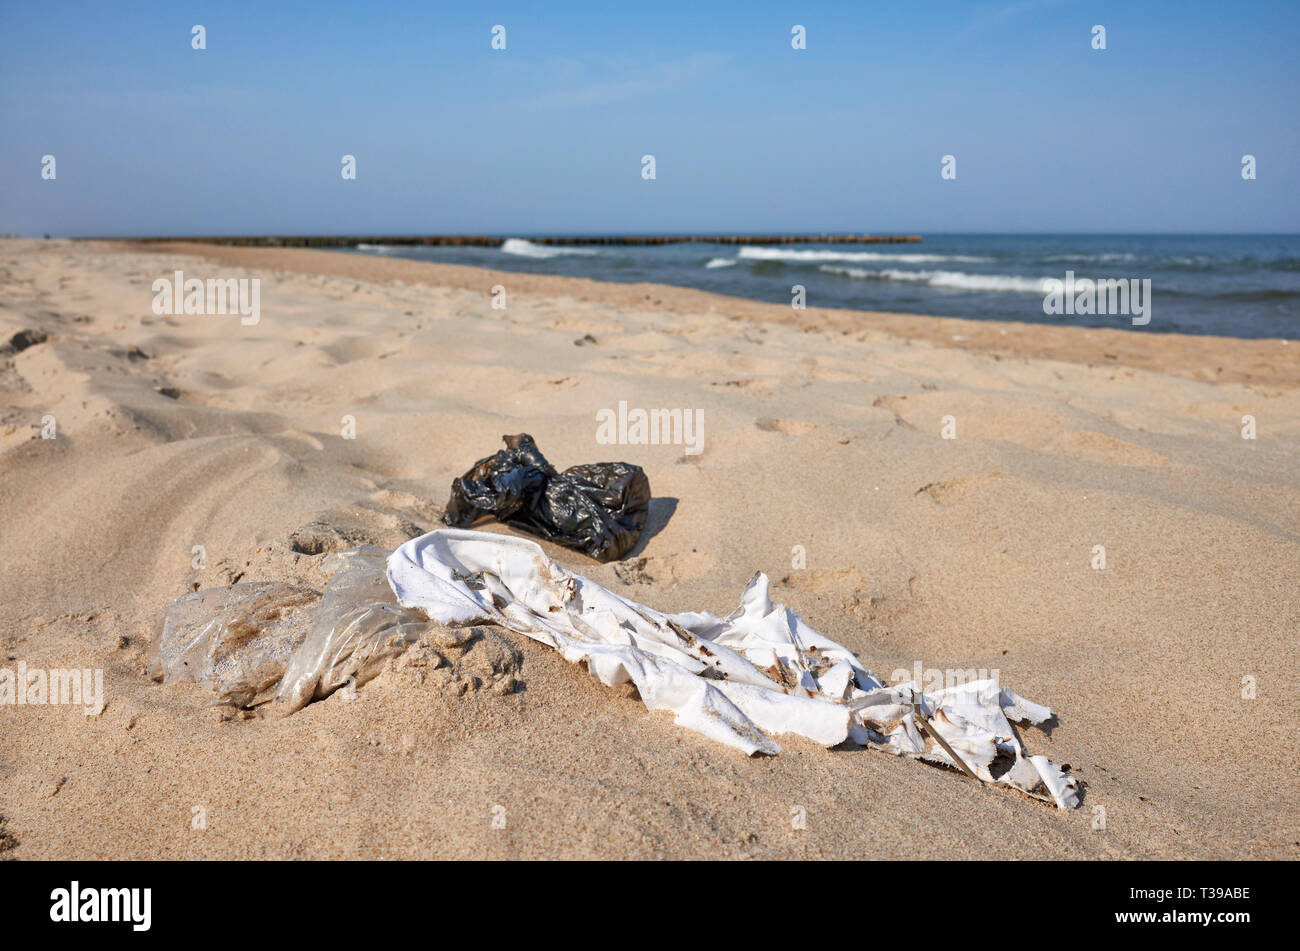 Garbage on a beach. On March 2019 The European Parliament has approved a law banning a wide range of single use plastic items by 2021. - Stock Image